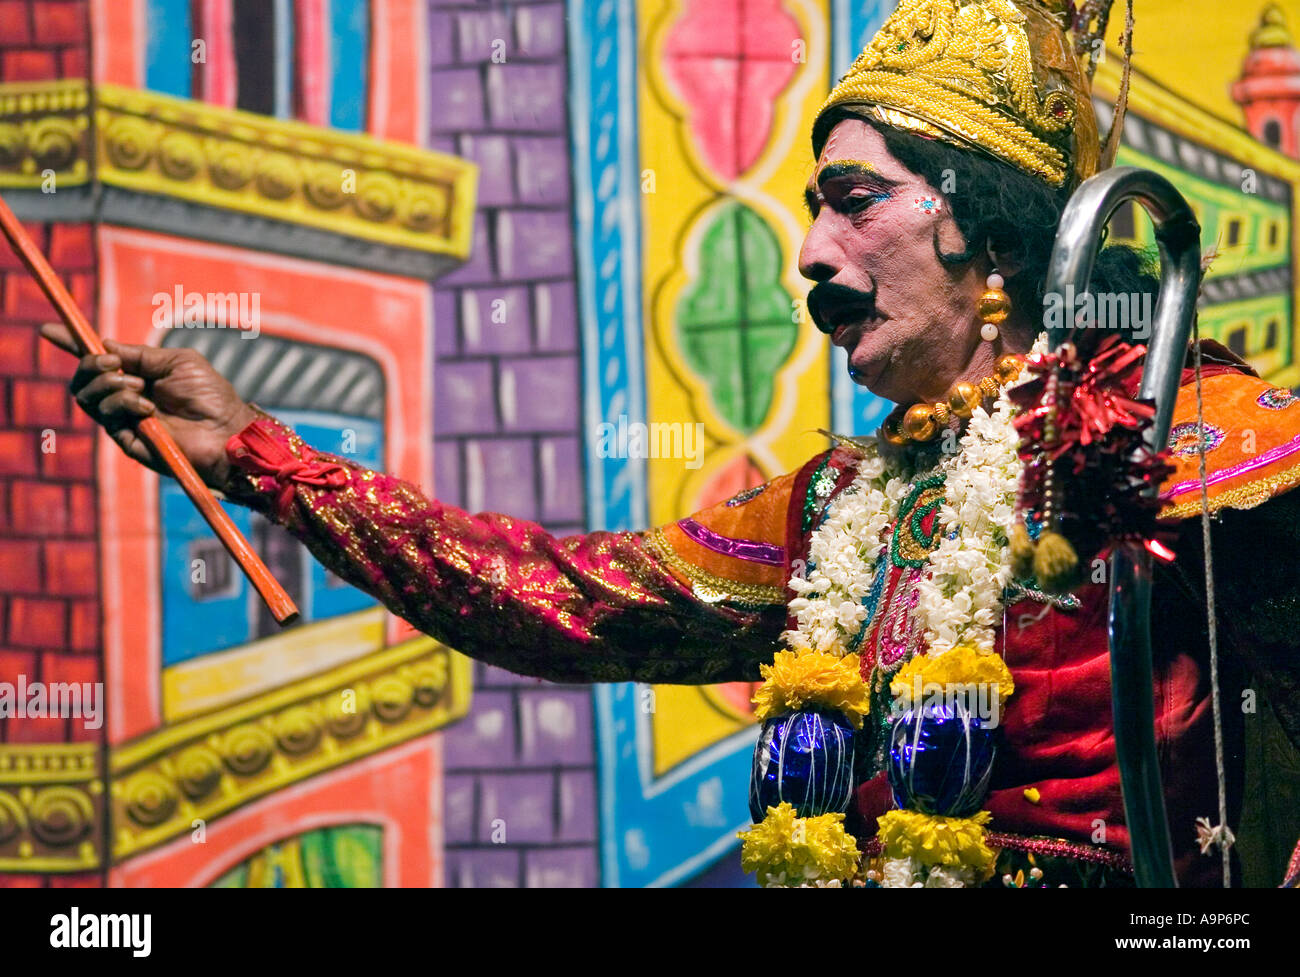 Indian street actor dressed as Arjuna performing The Mahabharata on stage - Stock Image